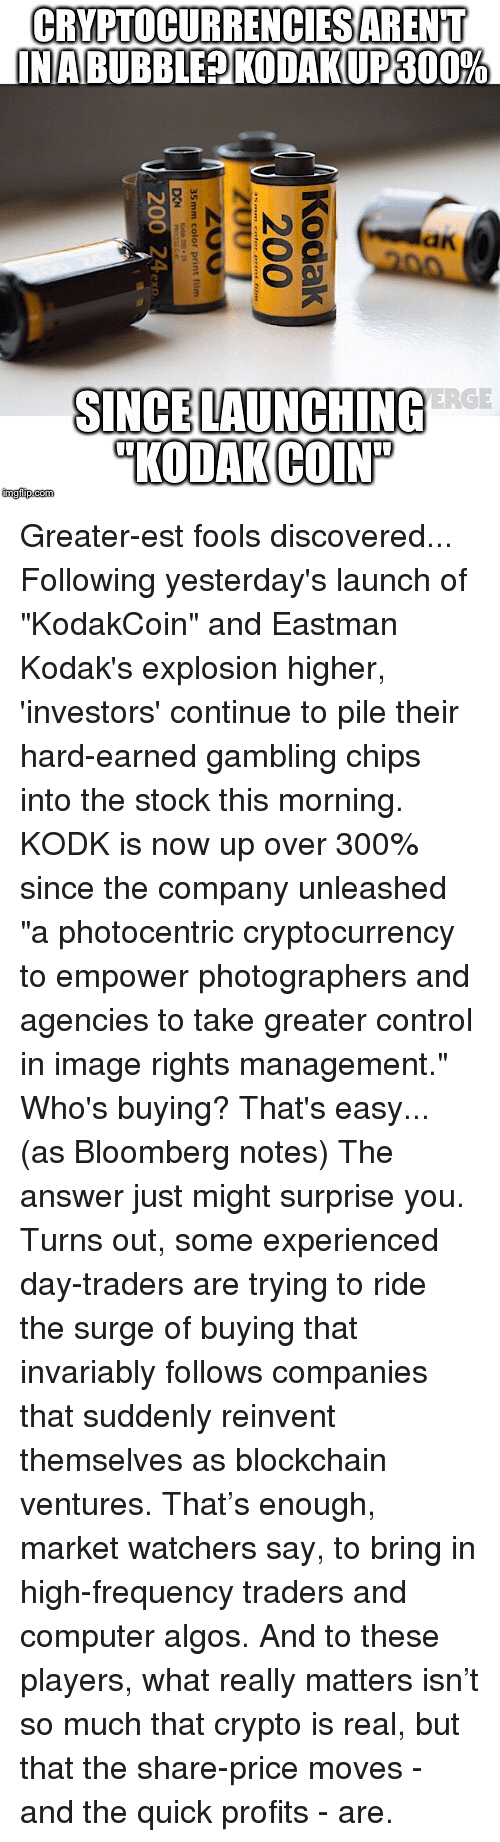 """Memes, Control, and Computer: CRYPTOCURRENCIESARENT  NABUBBLEPIKODAKUP 300%  an  ERGE  SINCE LAUNCHING  """"KODAK COIN  KODAKCOI  imgflip.com Greater-est fools discovered... Following yesterday's launch of """"KodakCoin"""" and Eastman Kodak's explosion higher, 'investors' continue to pile their hard-earned gambling chips into the stock this morning. KODK is now up over 300% since the company unleashed """"a photocentric cryptocurrency to empower photographers and agencies to take greater control in image rights management."""" Who's buying? That's easy... (as Bloomberg notes) The answer just might surprise you. Turns out, some experienced day-traders are trying to ride the surge of buying that invariably follows companies that suddenly reinvent themselves as blockchain ventures. That's enough, market watchers say, to bring in high-frequency traders and computer algos. And to these players, what really matters isn't so much that crypto is real, but that the share-price moves - and the quick profits - are."""